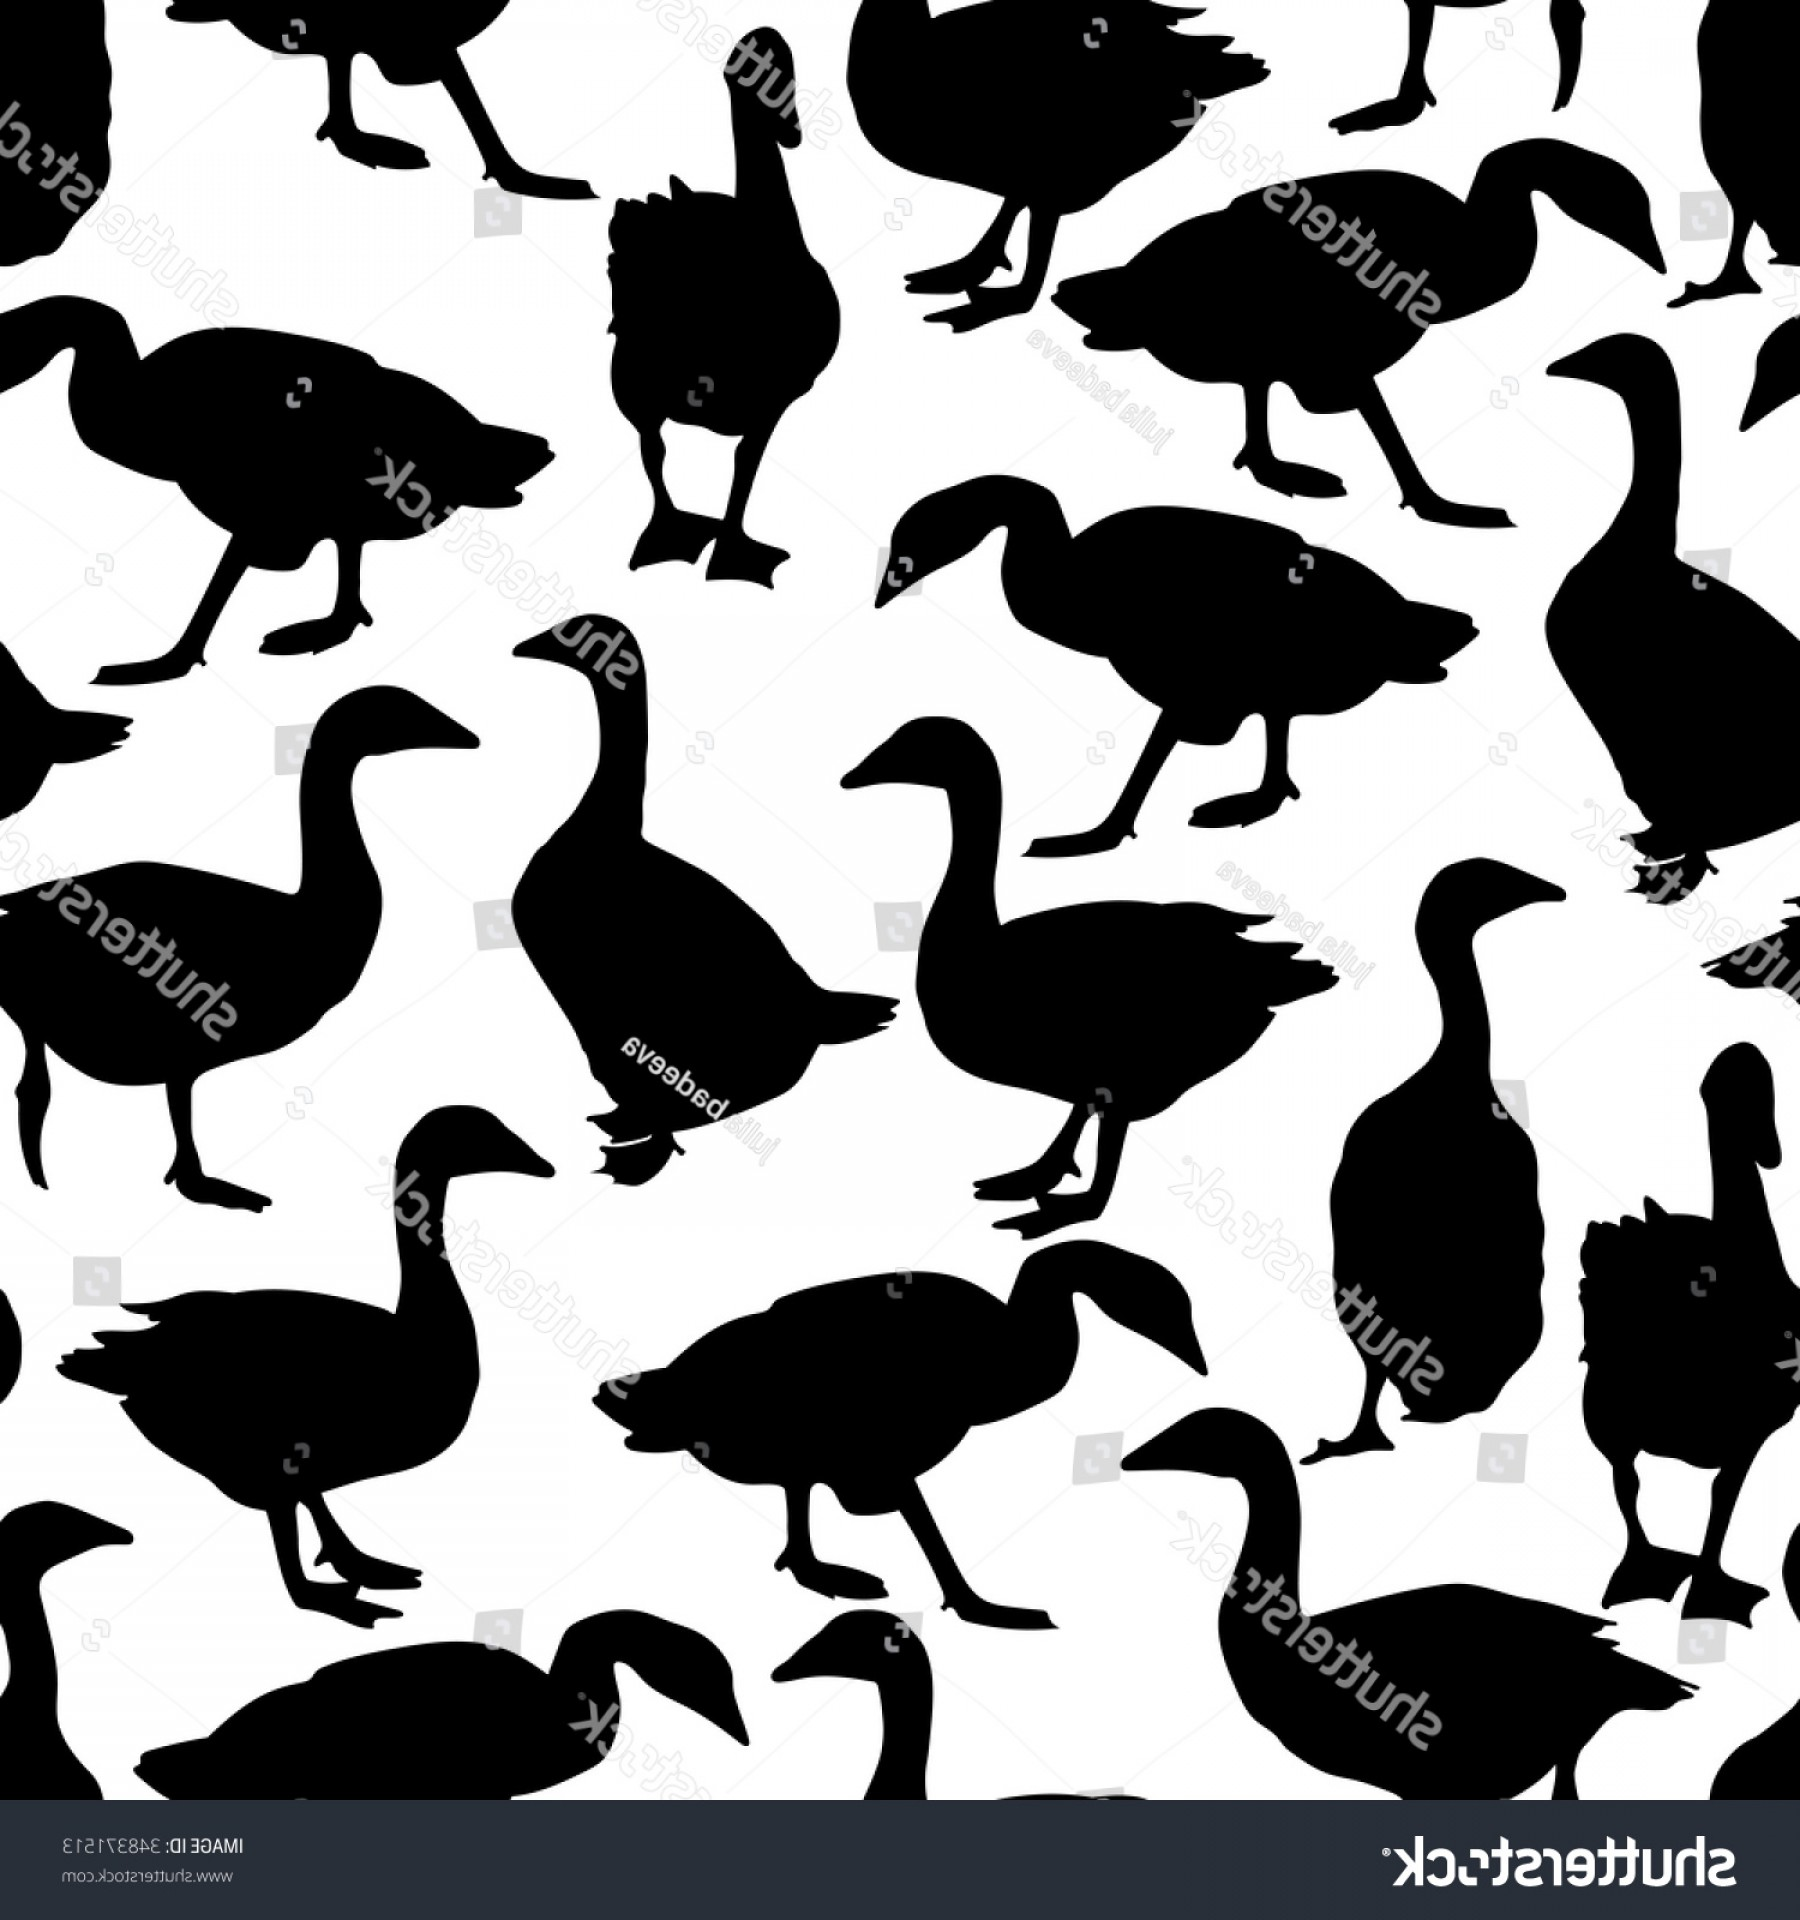 Geese Vector: Seamless Pattern Black Geese Vector Illustration